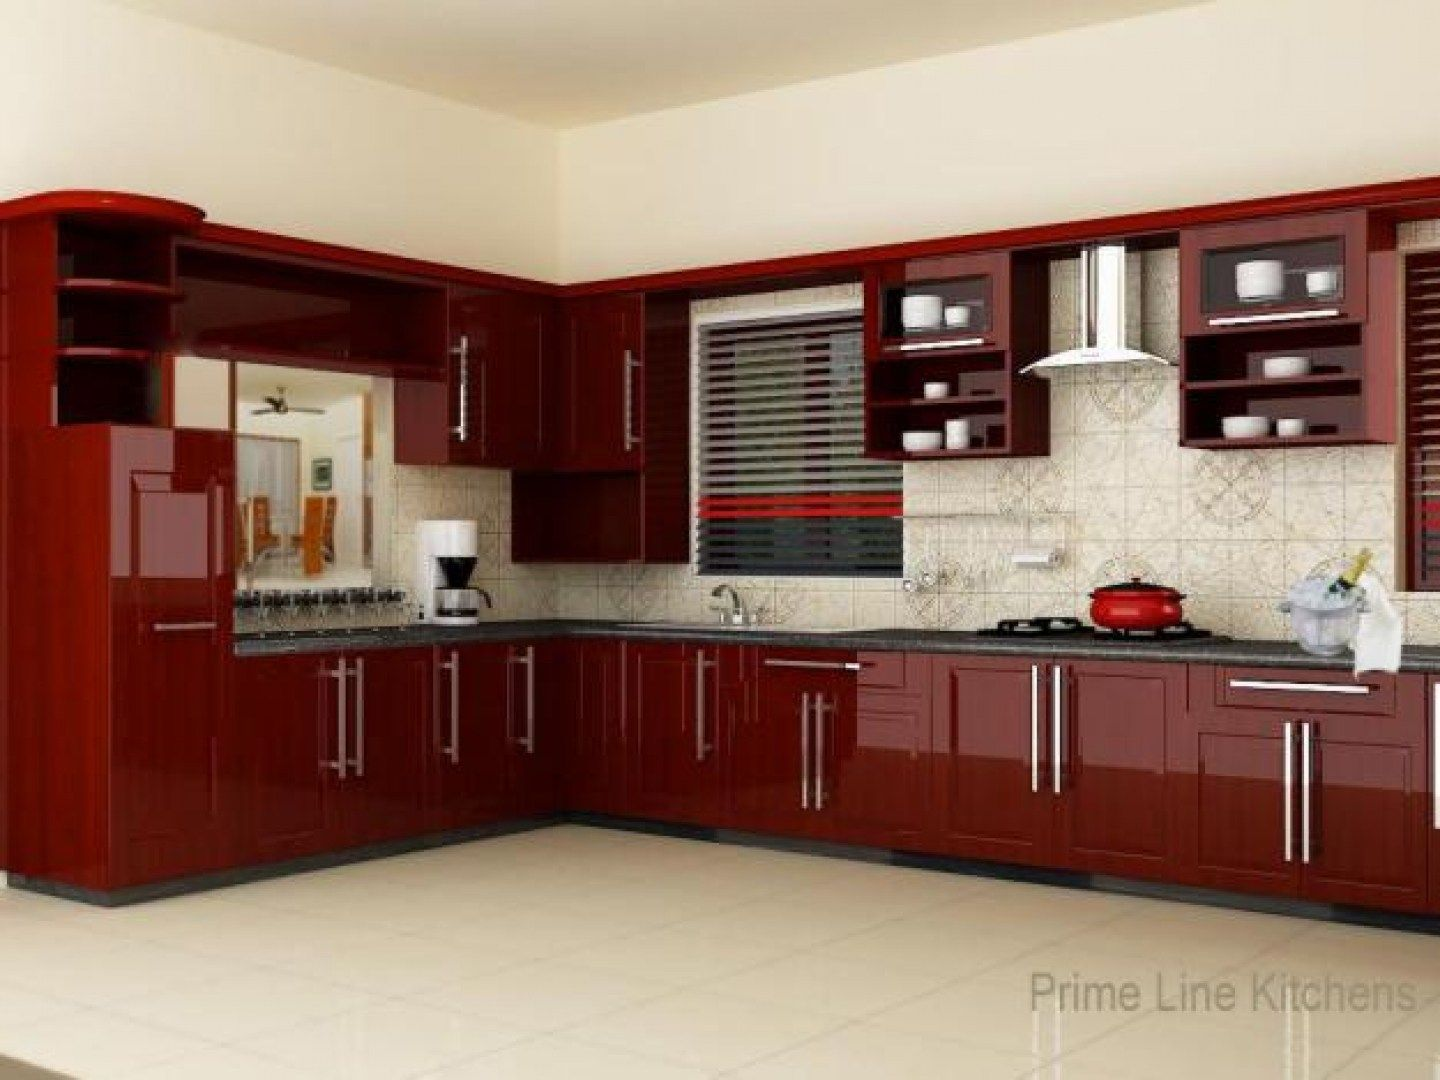 Kitchen Design Ideas Kitchen Woodwork Designs Hyderabad Download King Platform Bed Designs: kitchen cabinet door design ideas